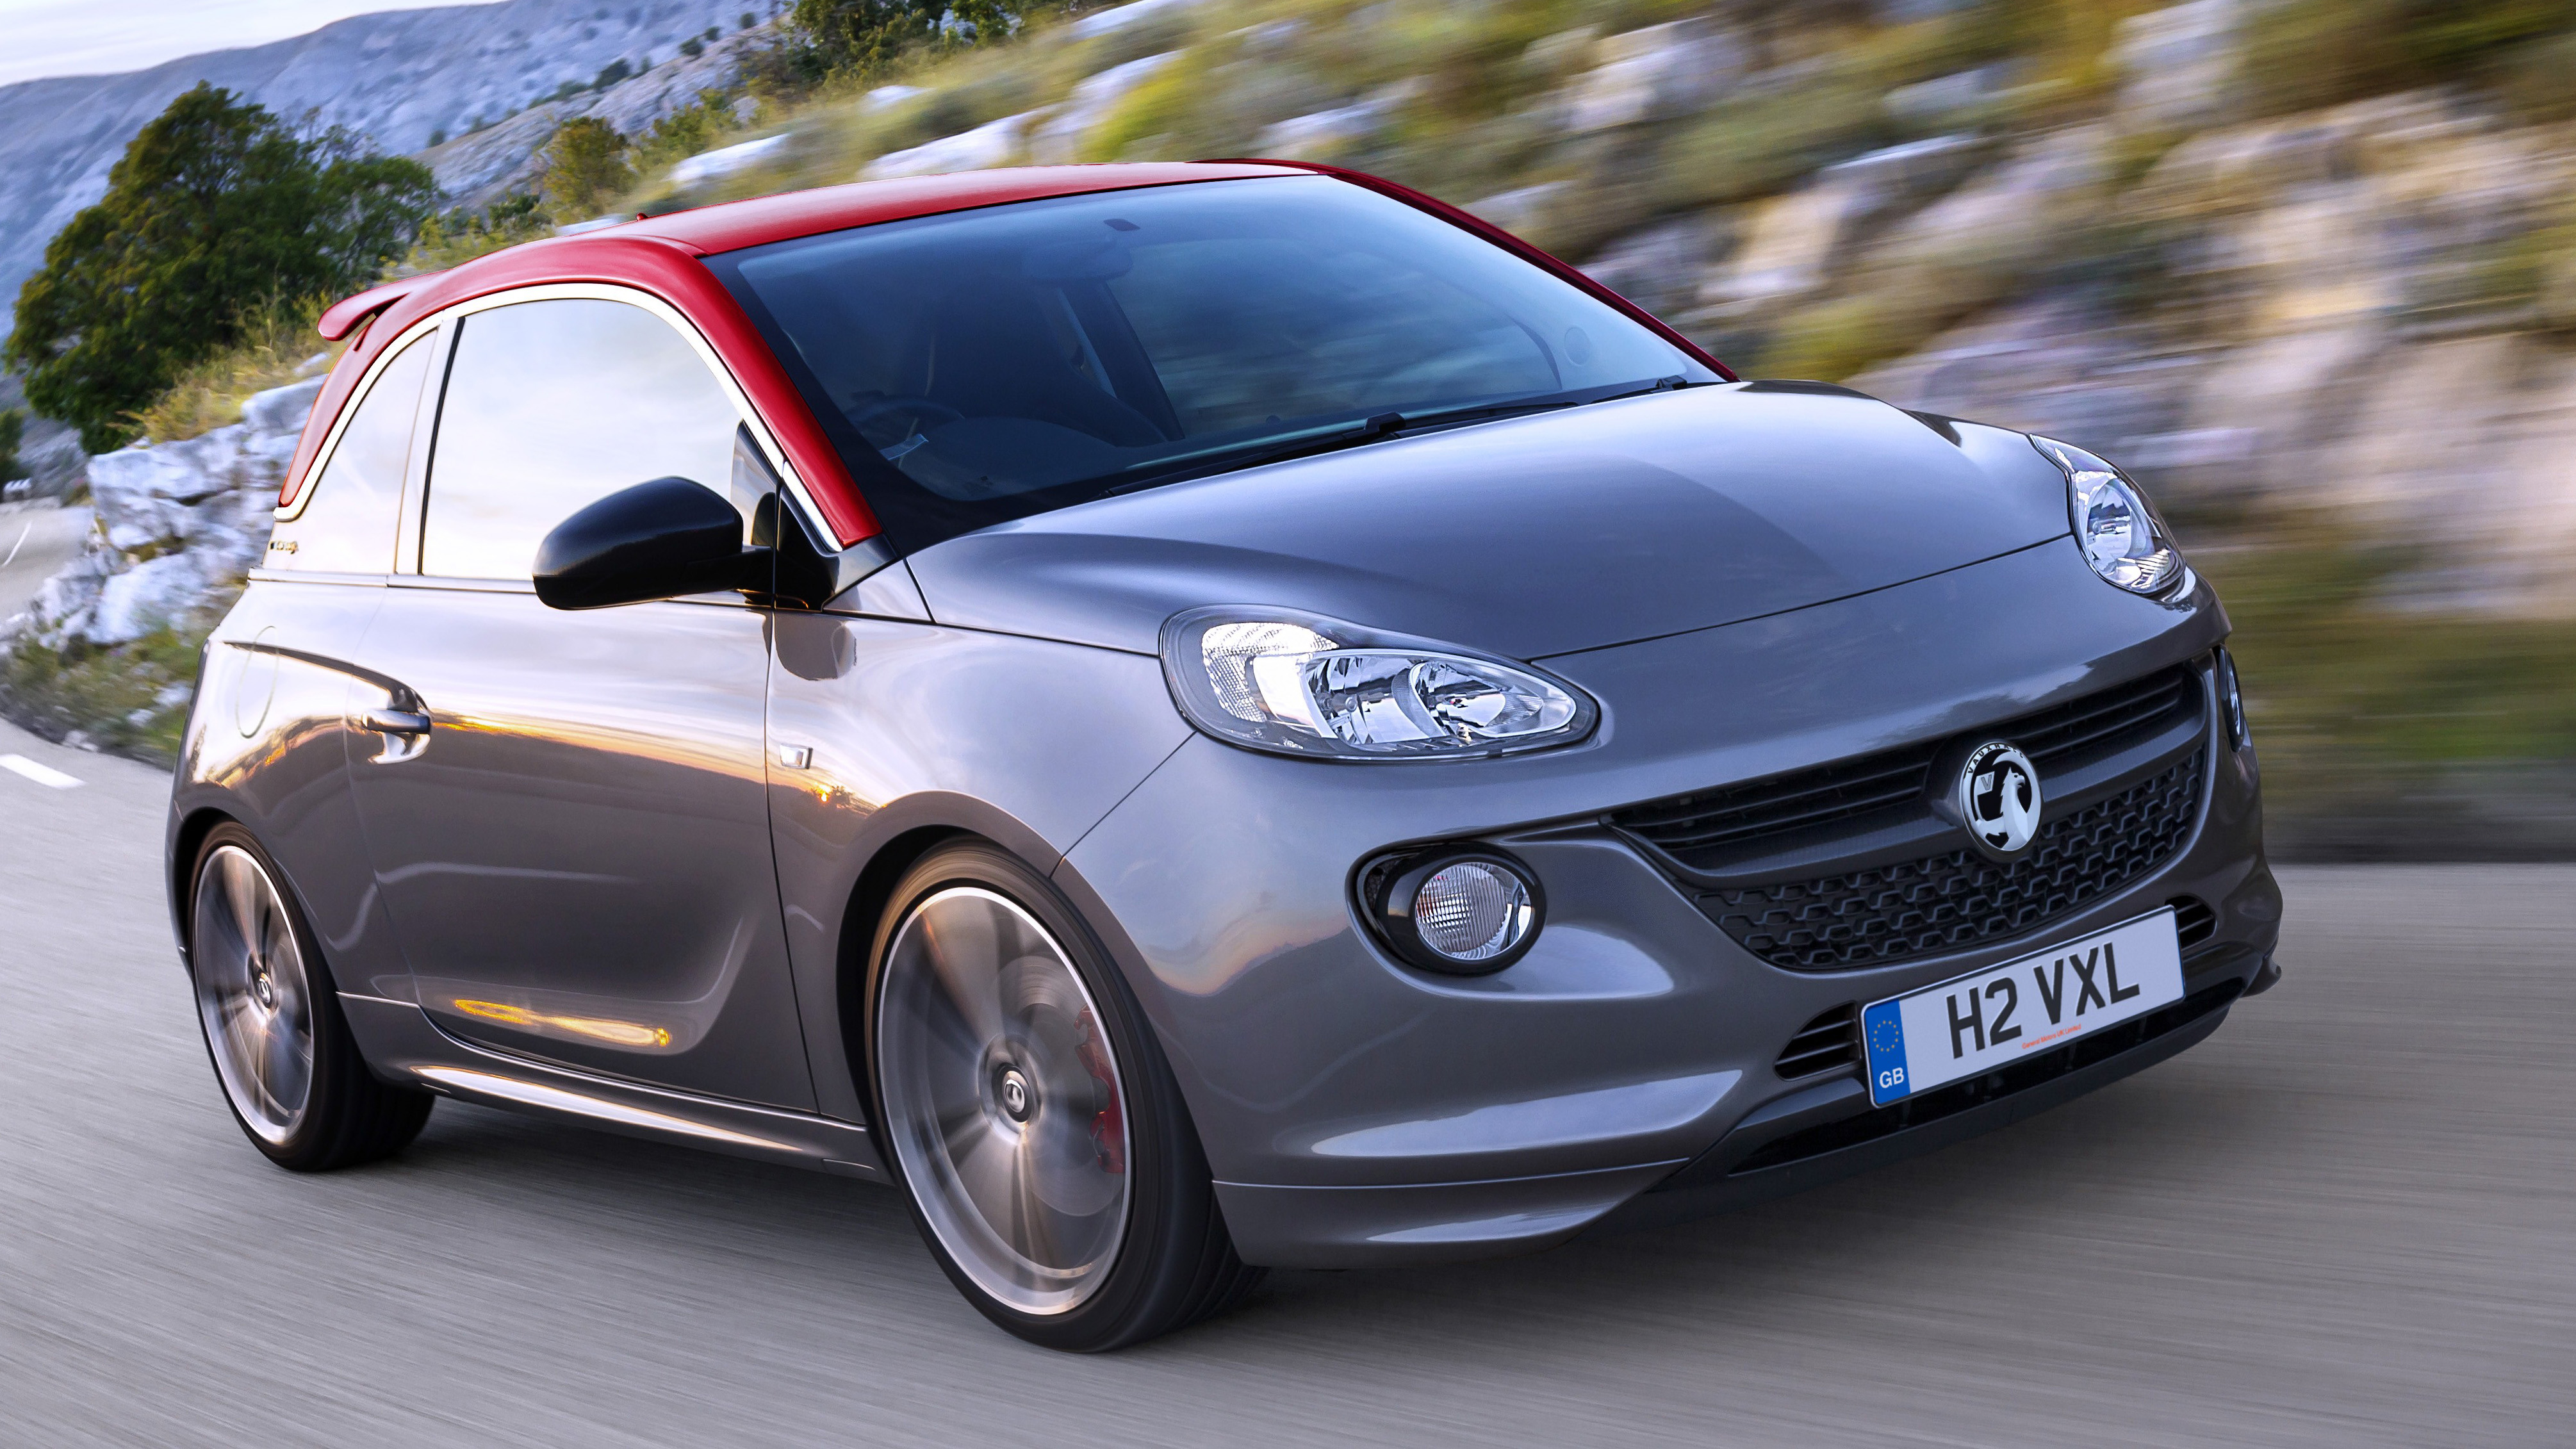 opel vauxhall adam s production car debuts in paris. Black Bedroom Furniture Sets. Home Design Ideas